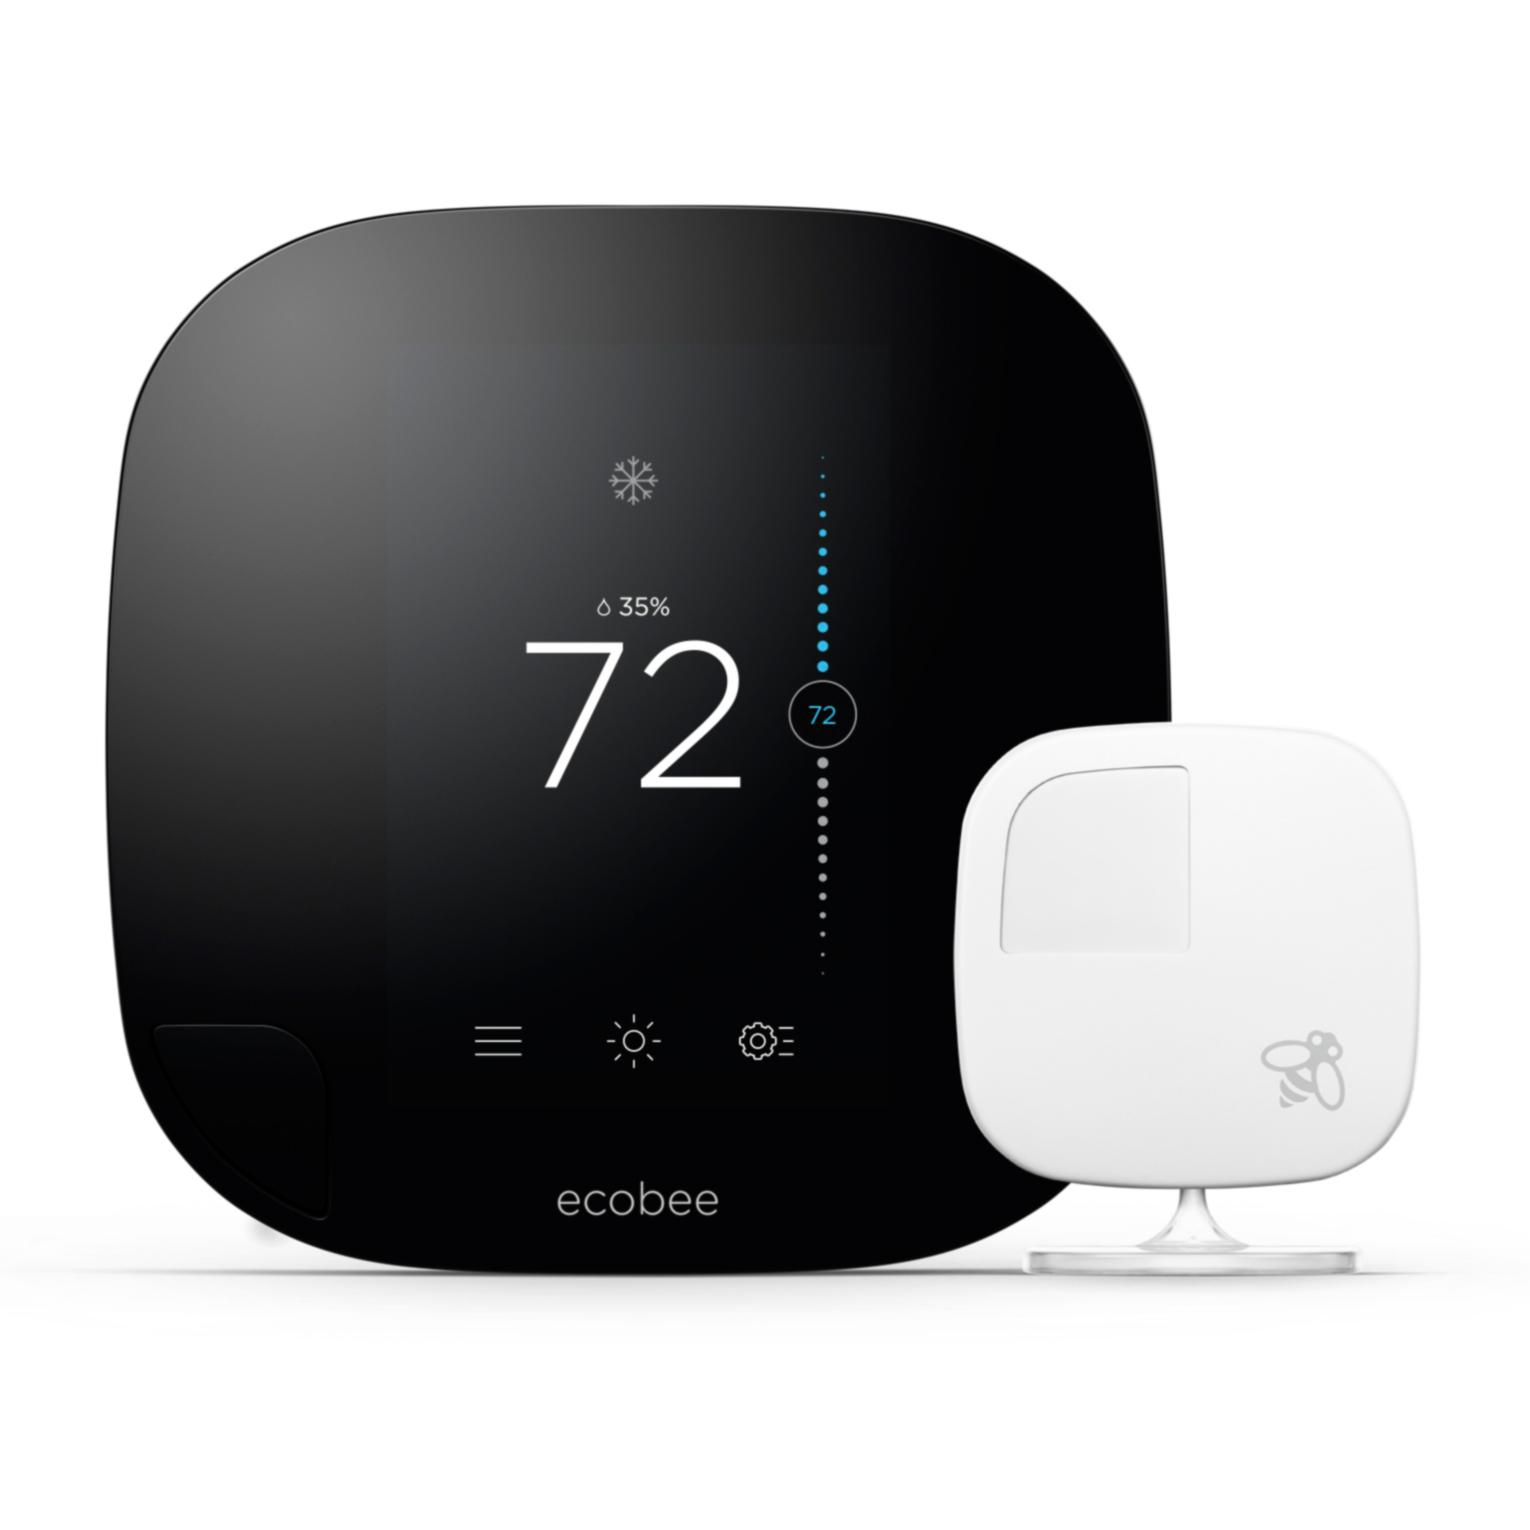 Ecobee3 Thermostat, Wi-Fi, Remote Sensor, 1st Generation, Works with